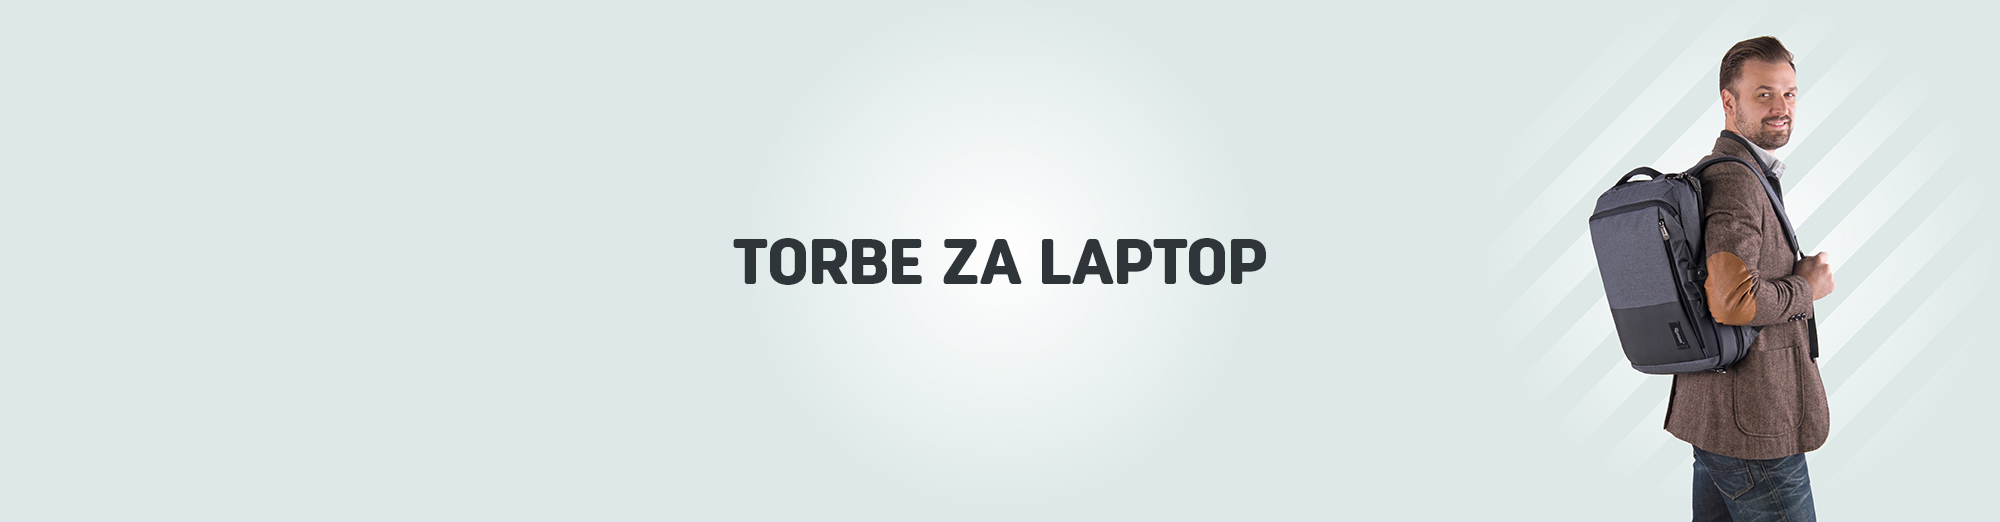 Torbe za laptop